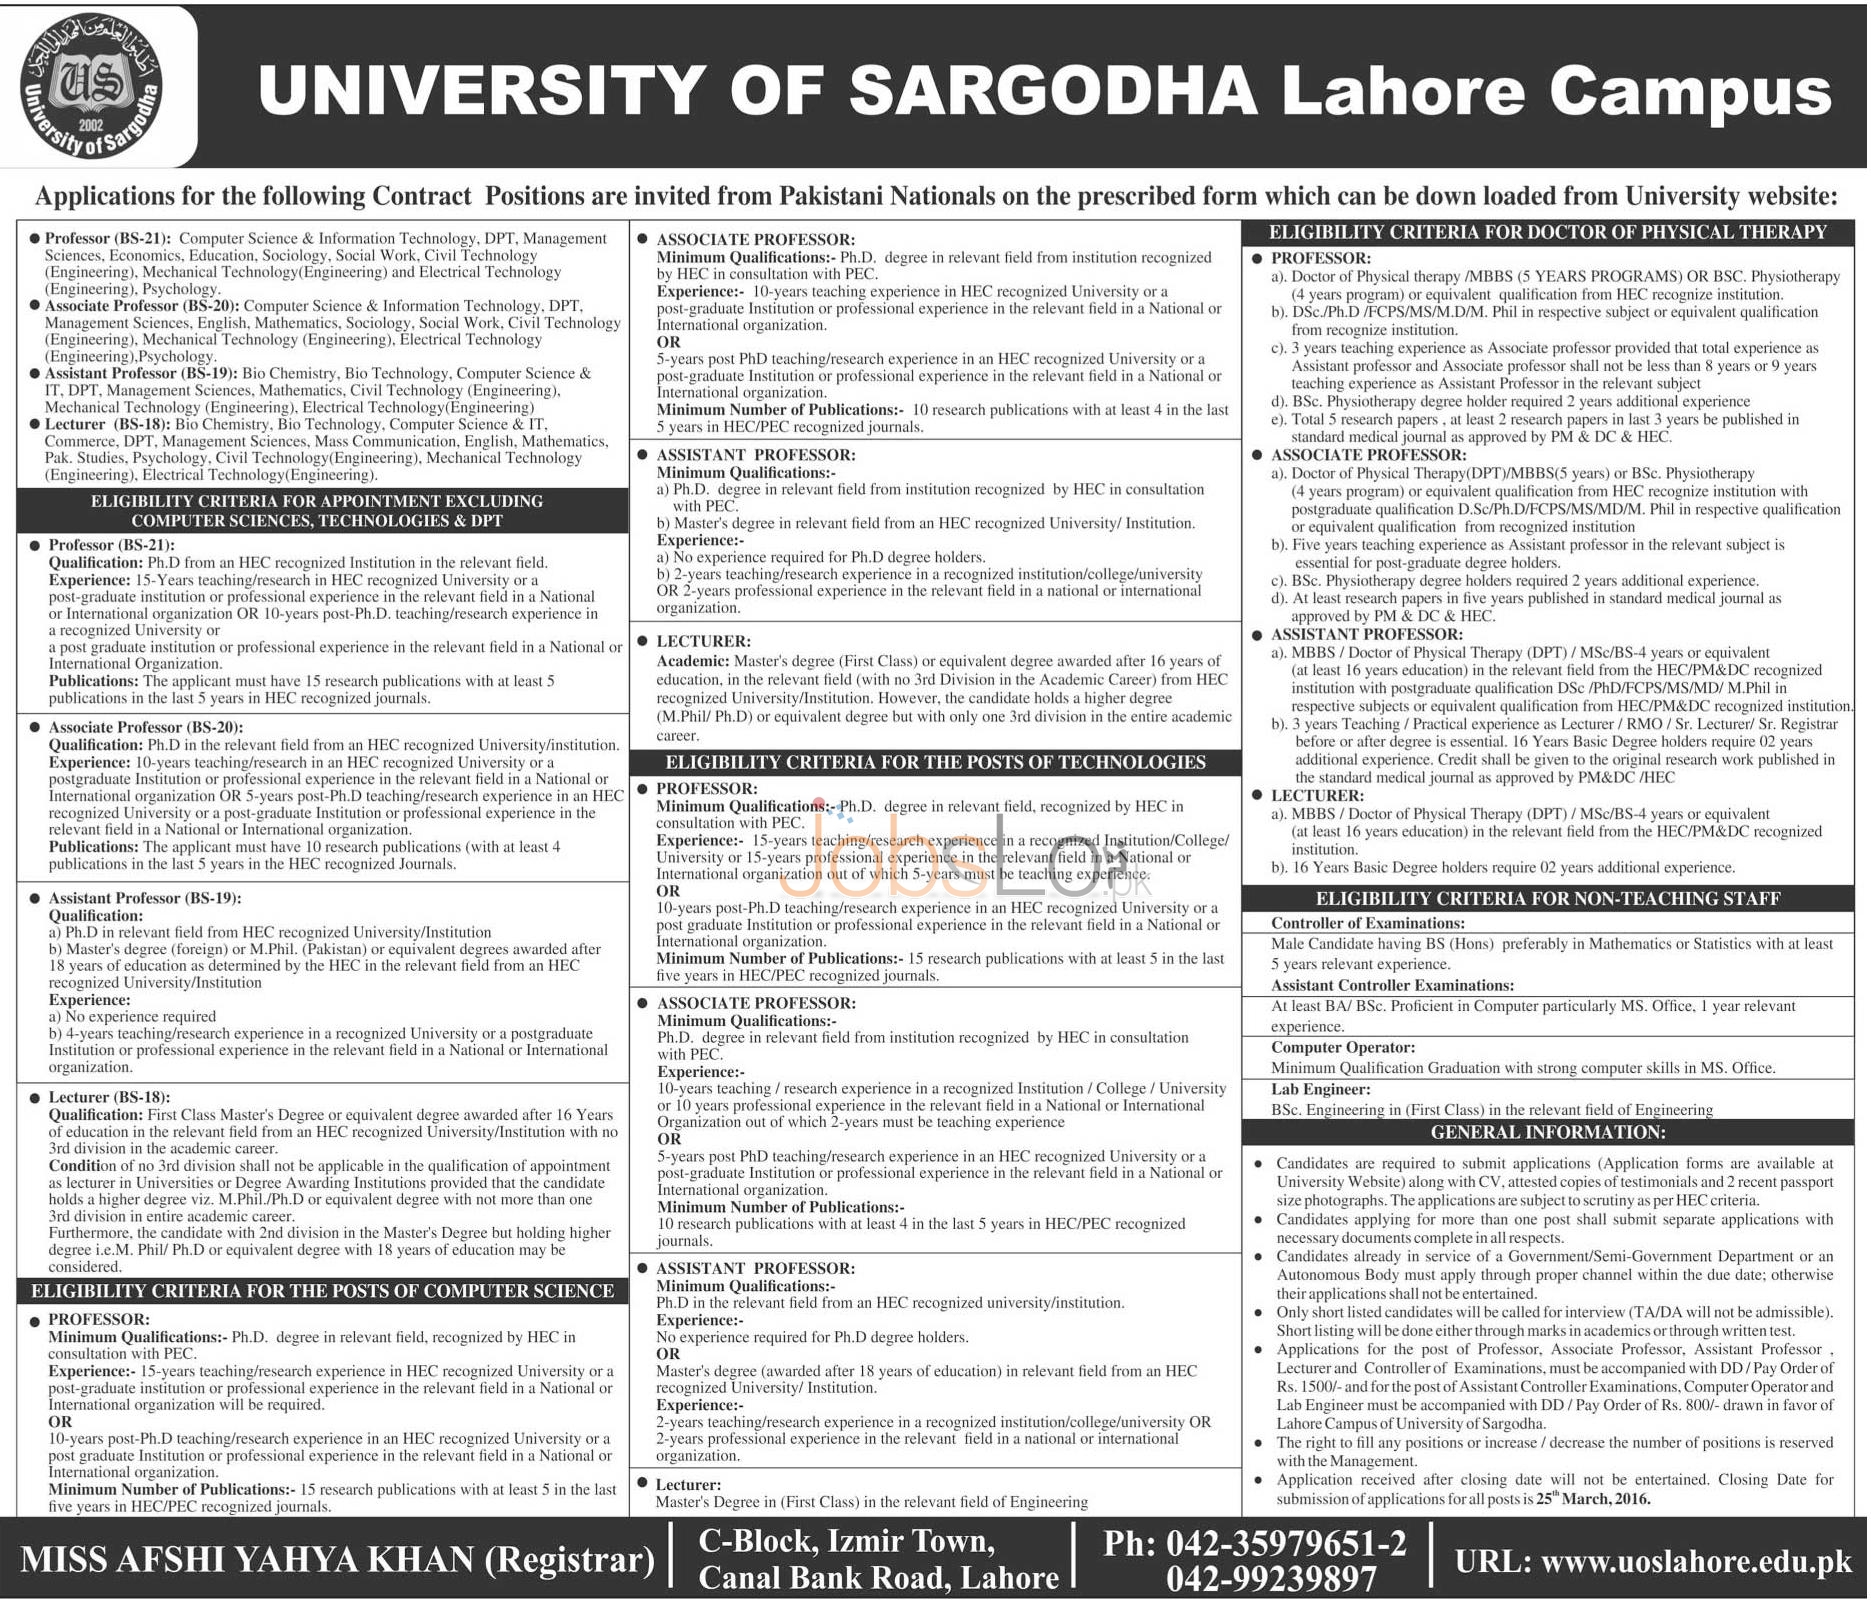 Recruitment Opportunities in University of Sargodha Lahore Campus 13 March 2016 Application Form Last Date